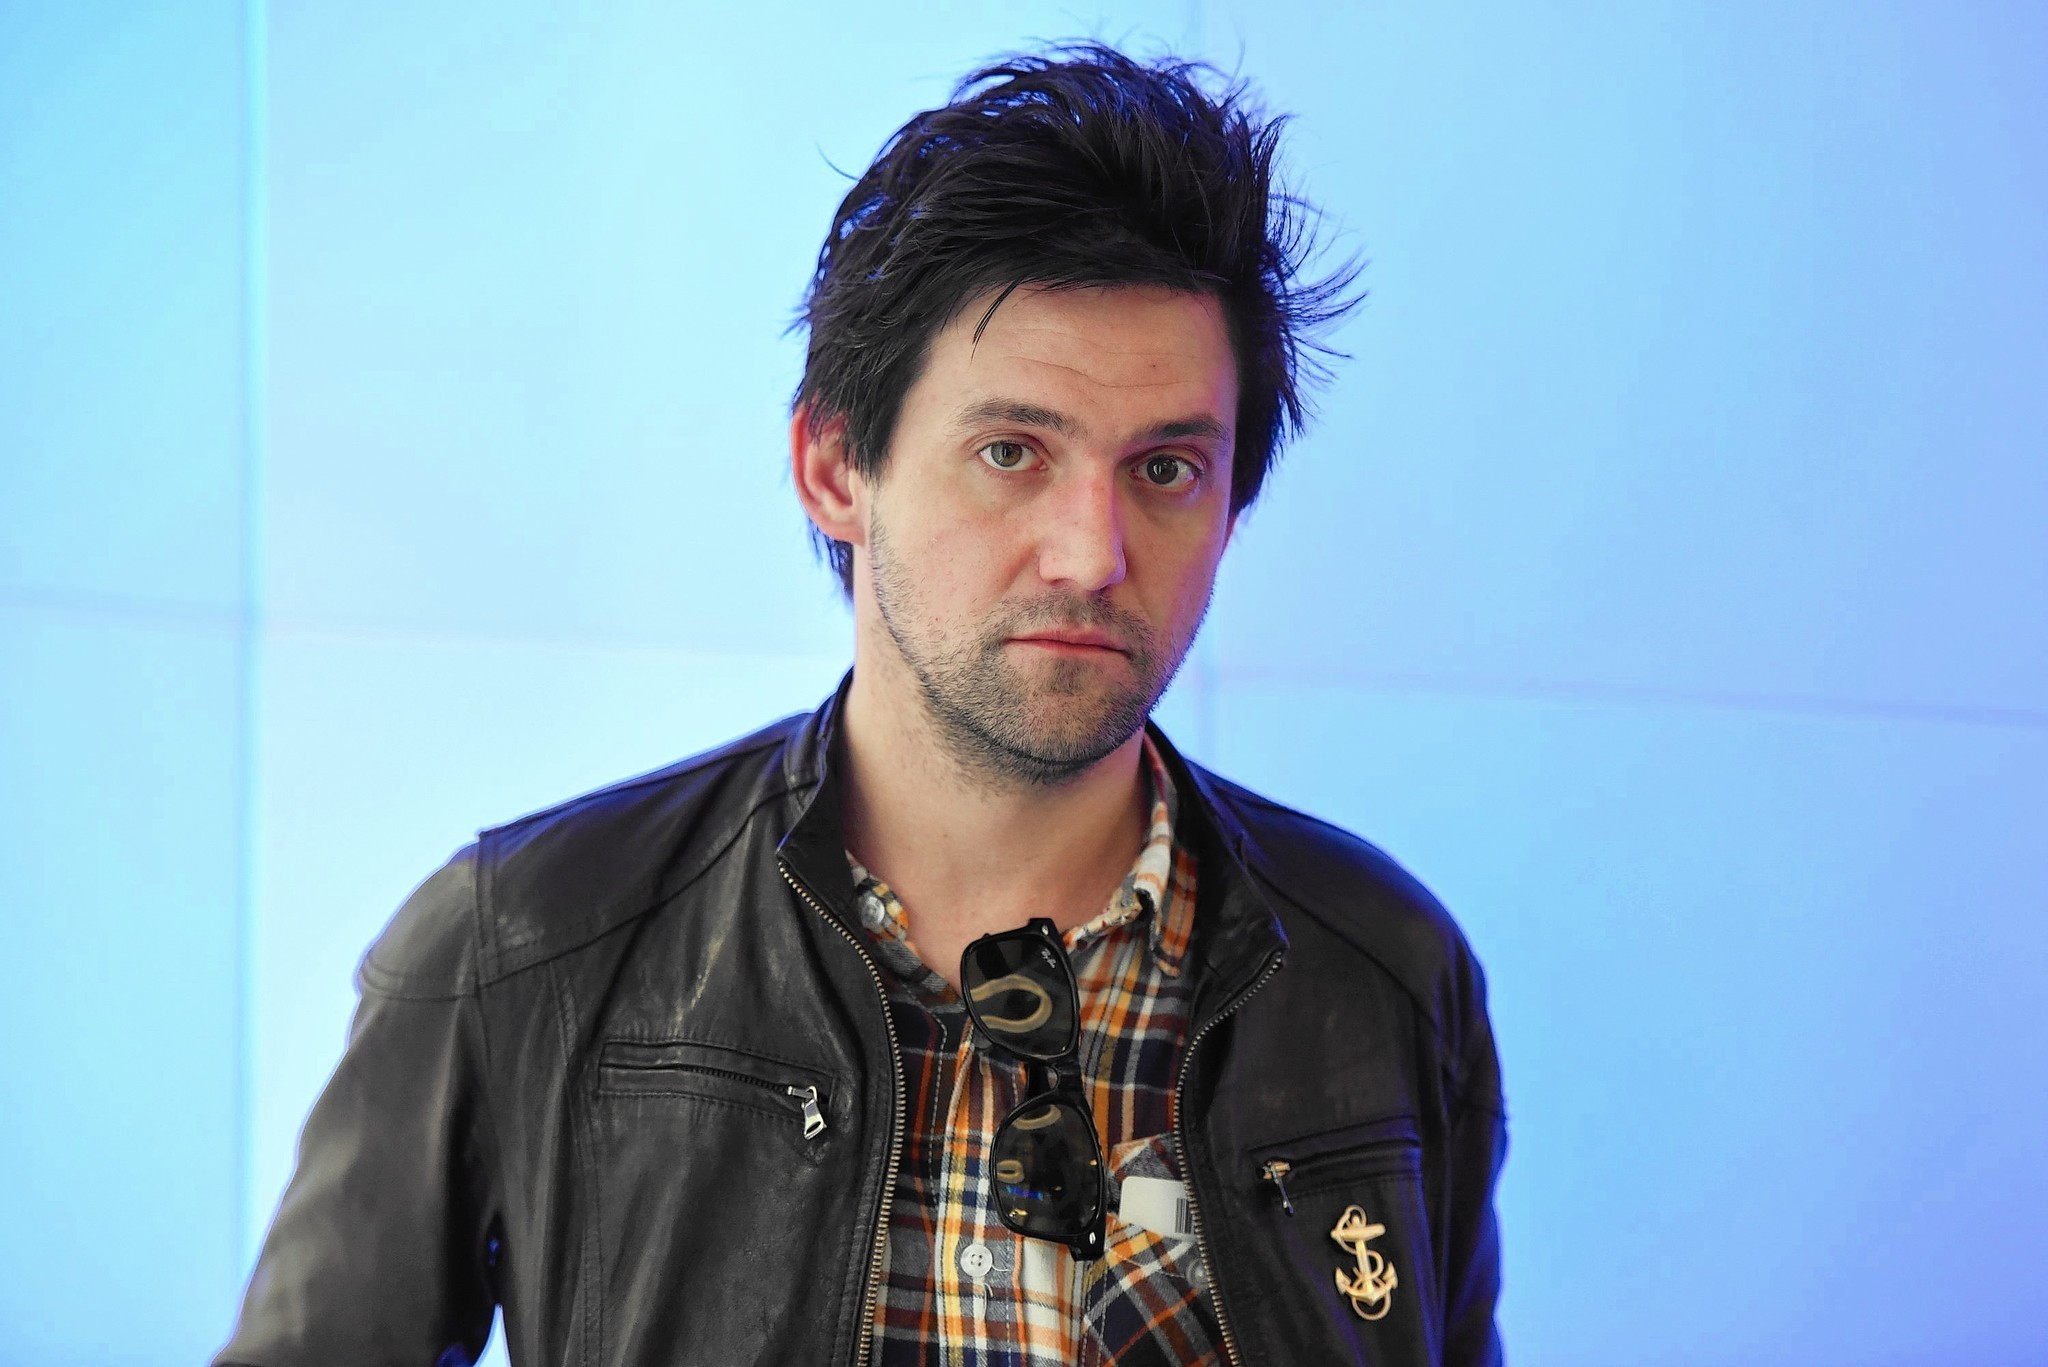 Conor Oberst Attractive Men T Conor Oberst Bright Eyes